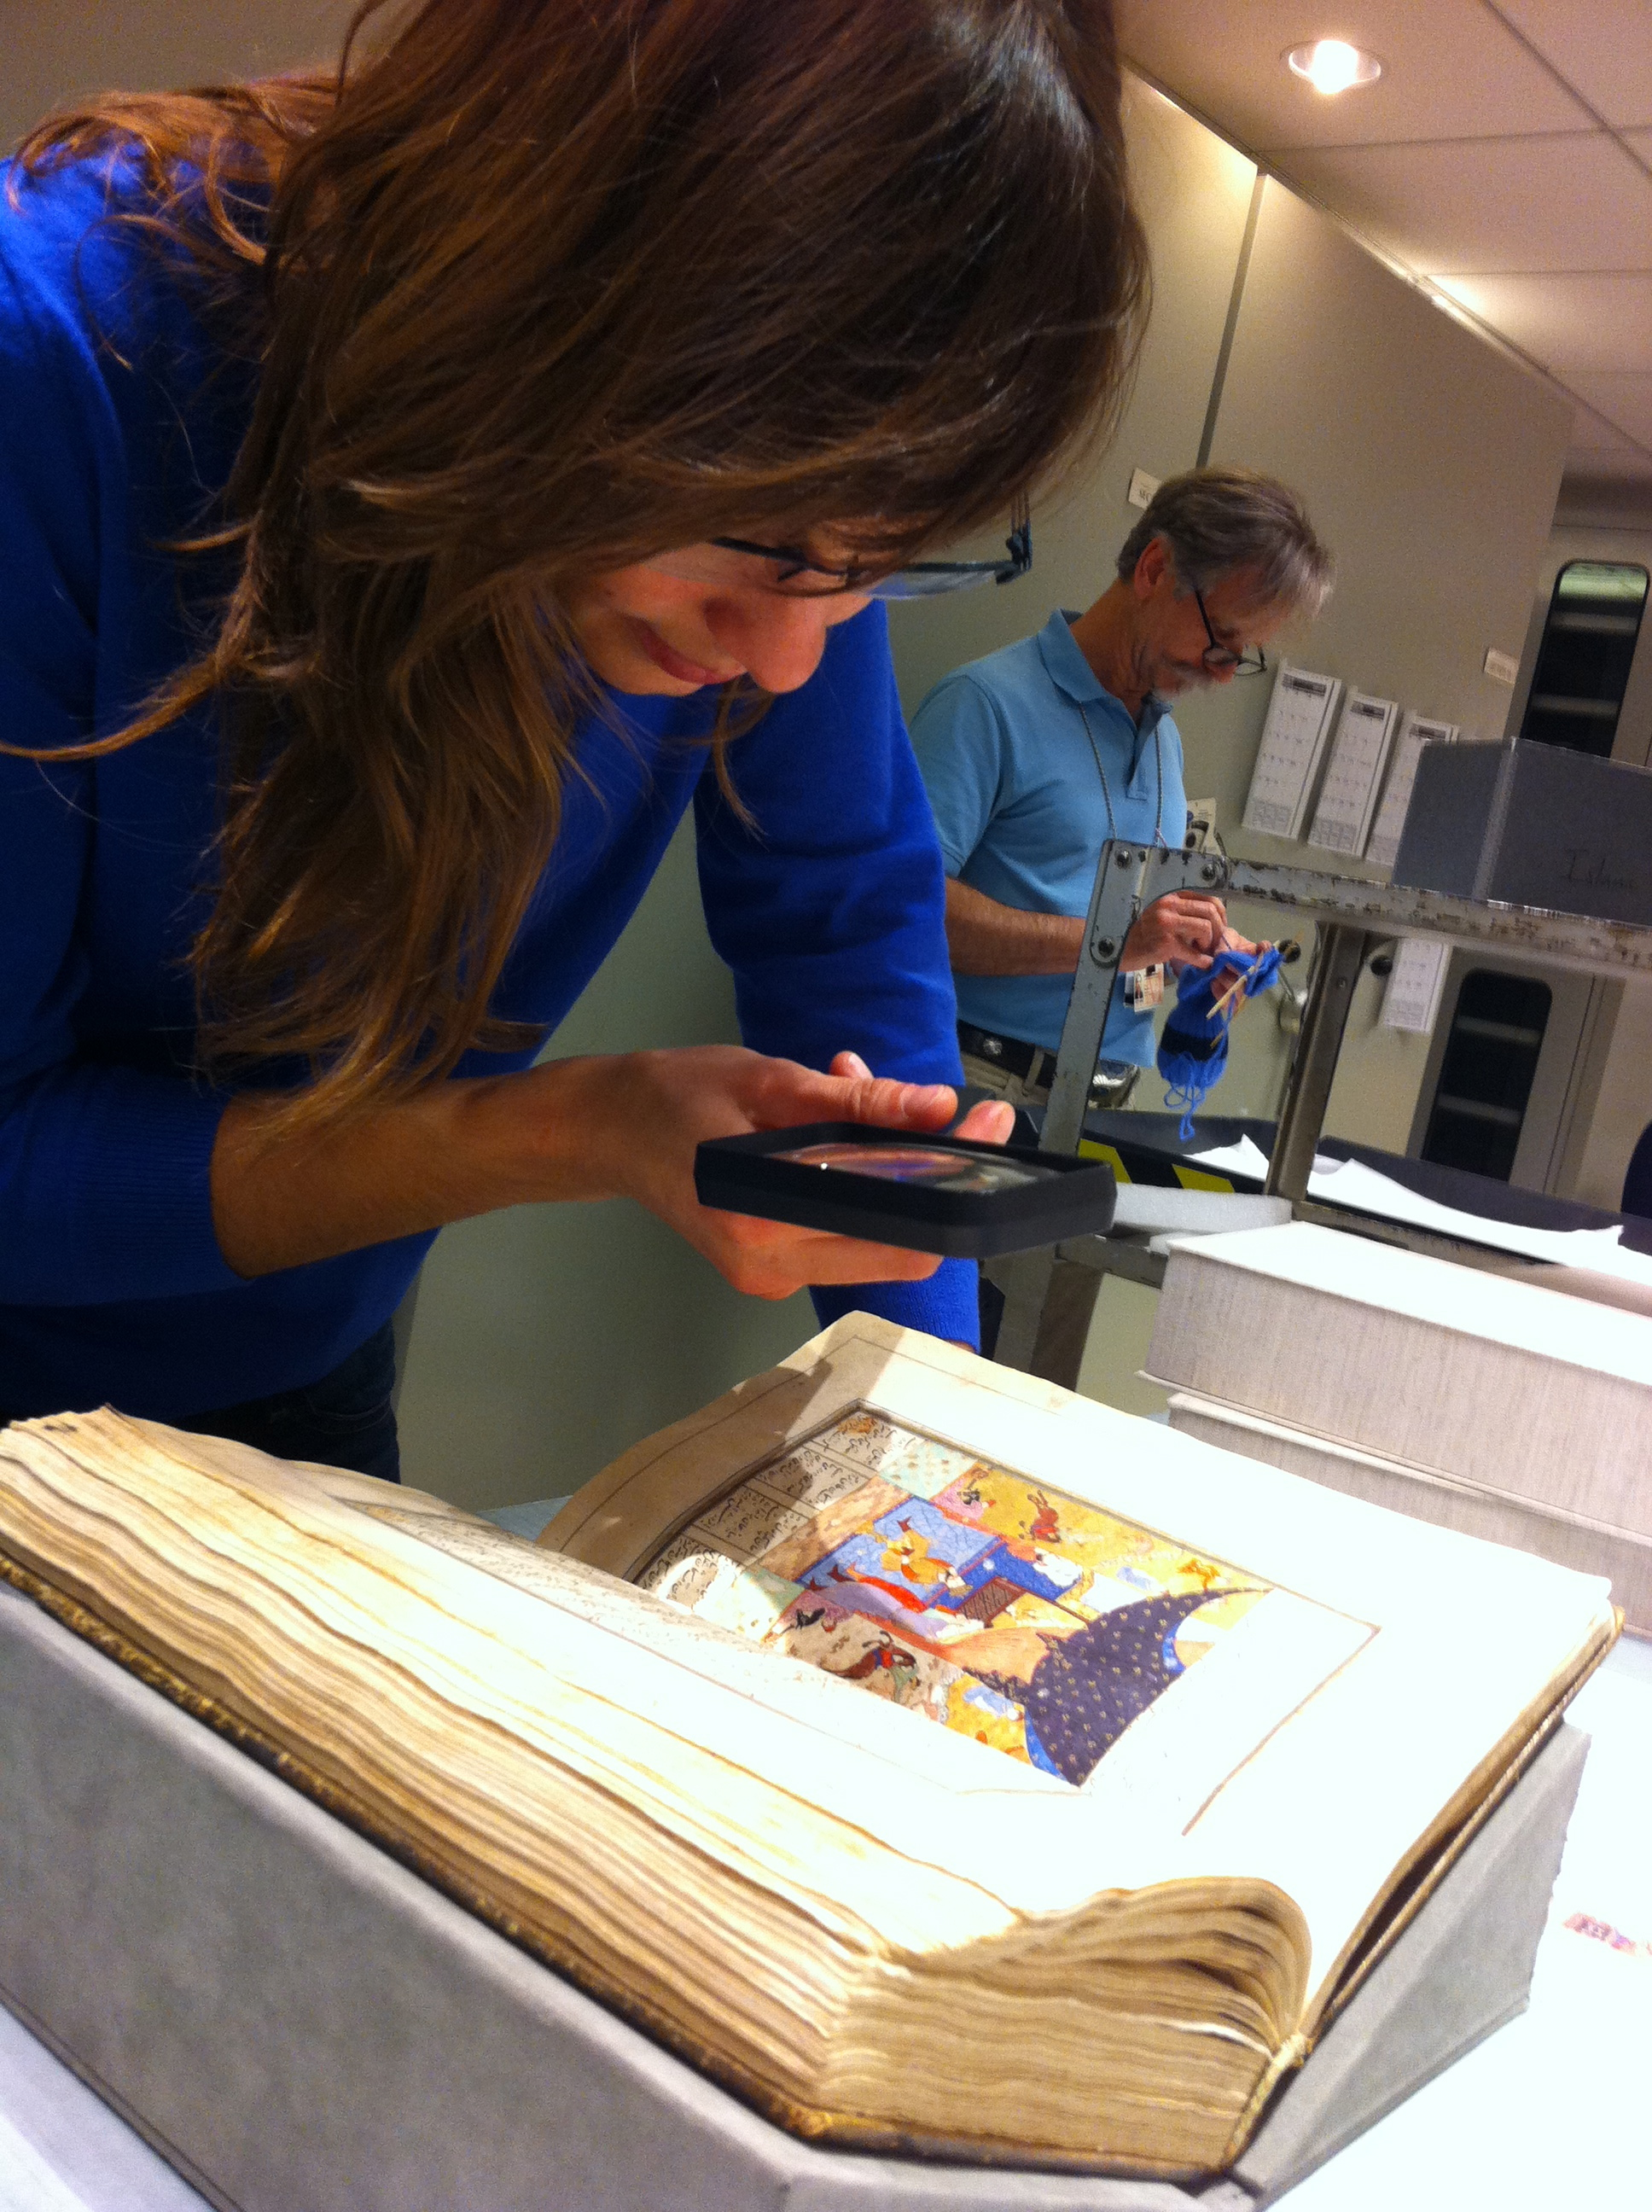 Viewing a 15th century Khamsa of Nizami manuscript in the archives of the Metropolitan Museum of Art in New York.